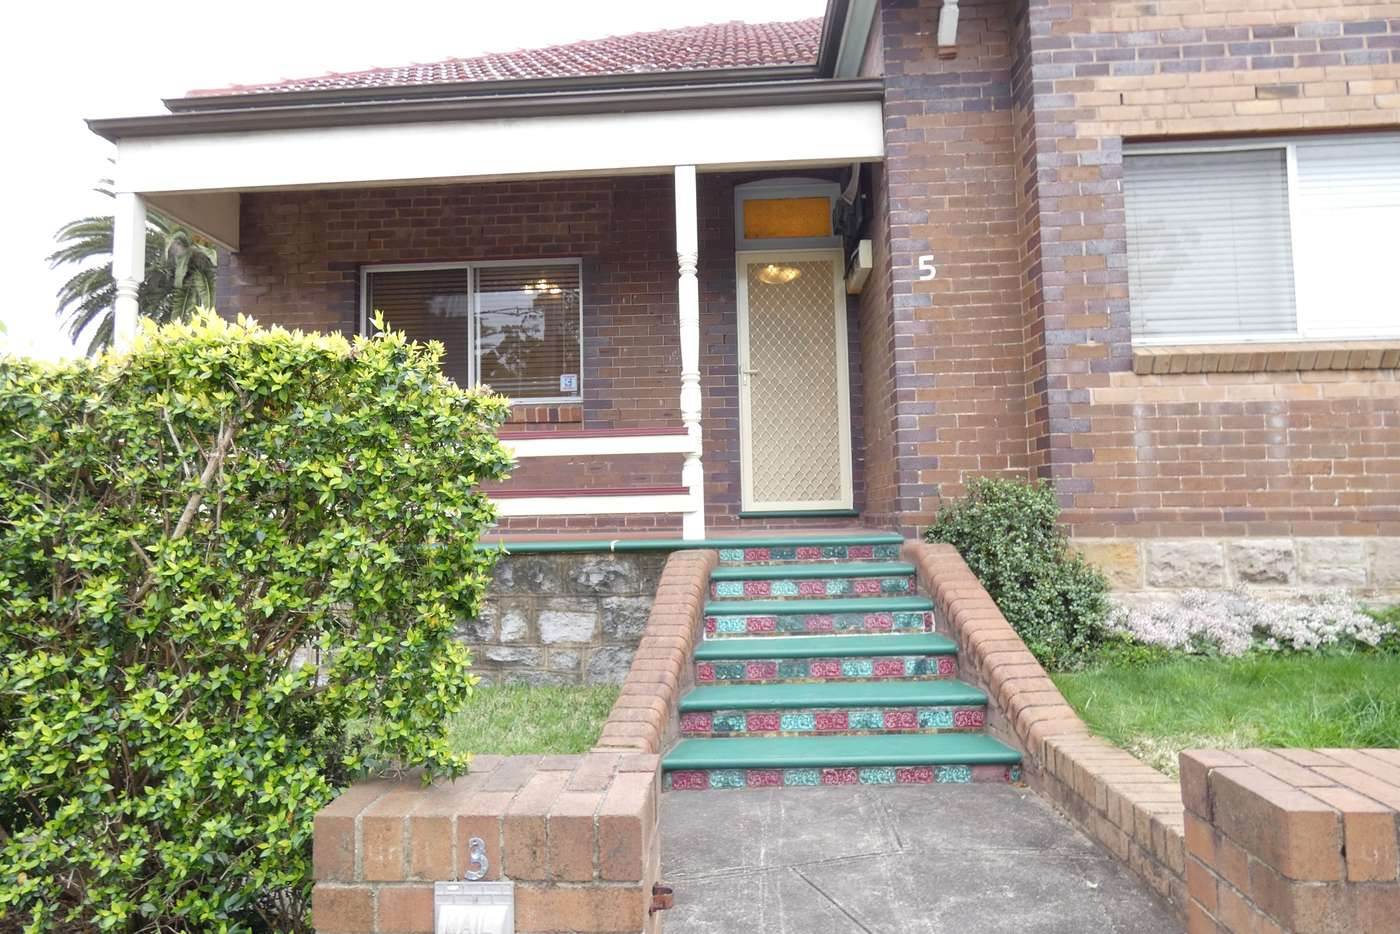 Main view of Homely house listing, 1/5 Robert Street, Ashfield NSW 2131